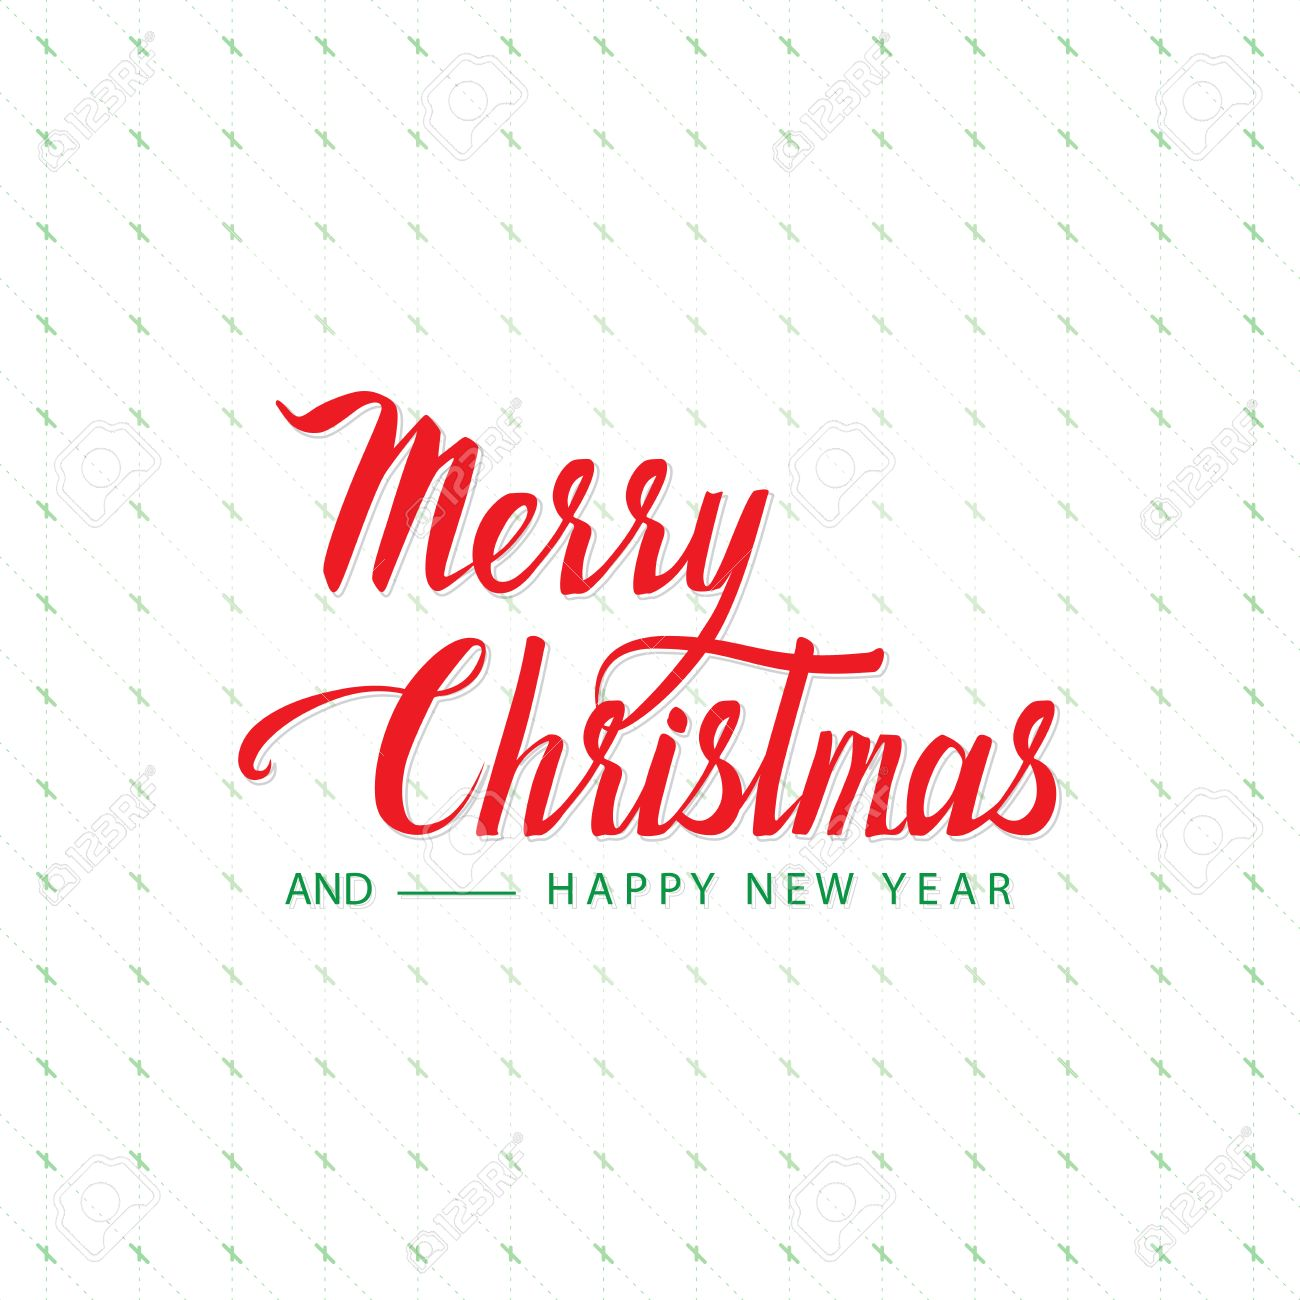 Merry Christmas In Cursive.Merry Christmas Cursive Hand Letters